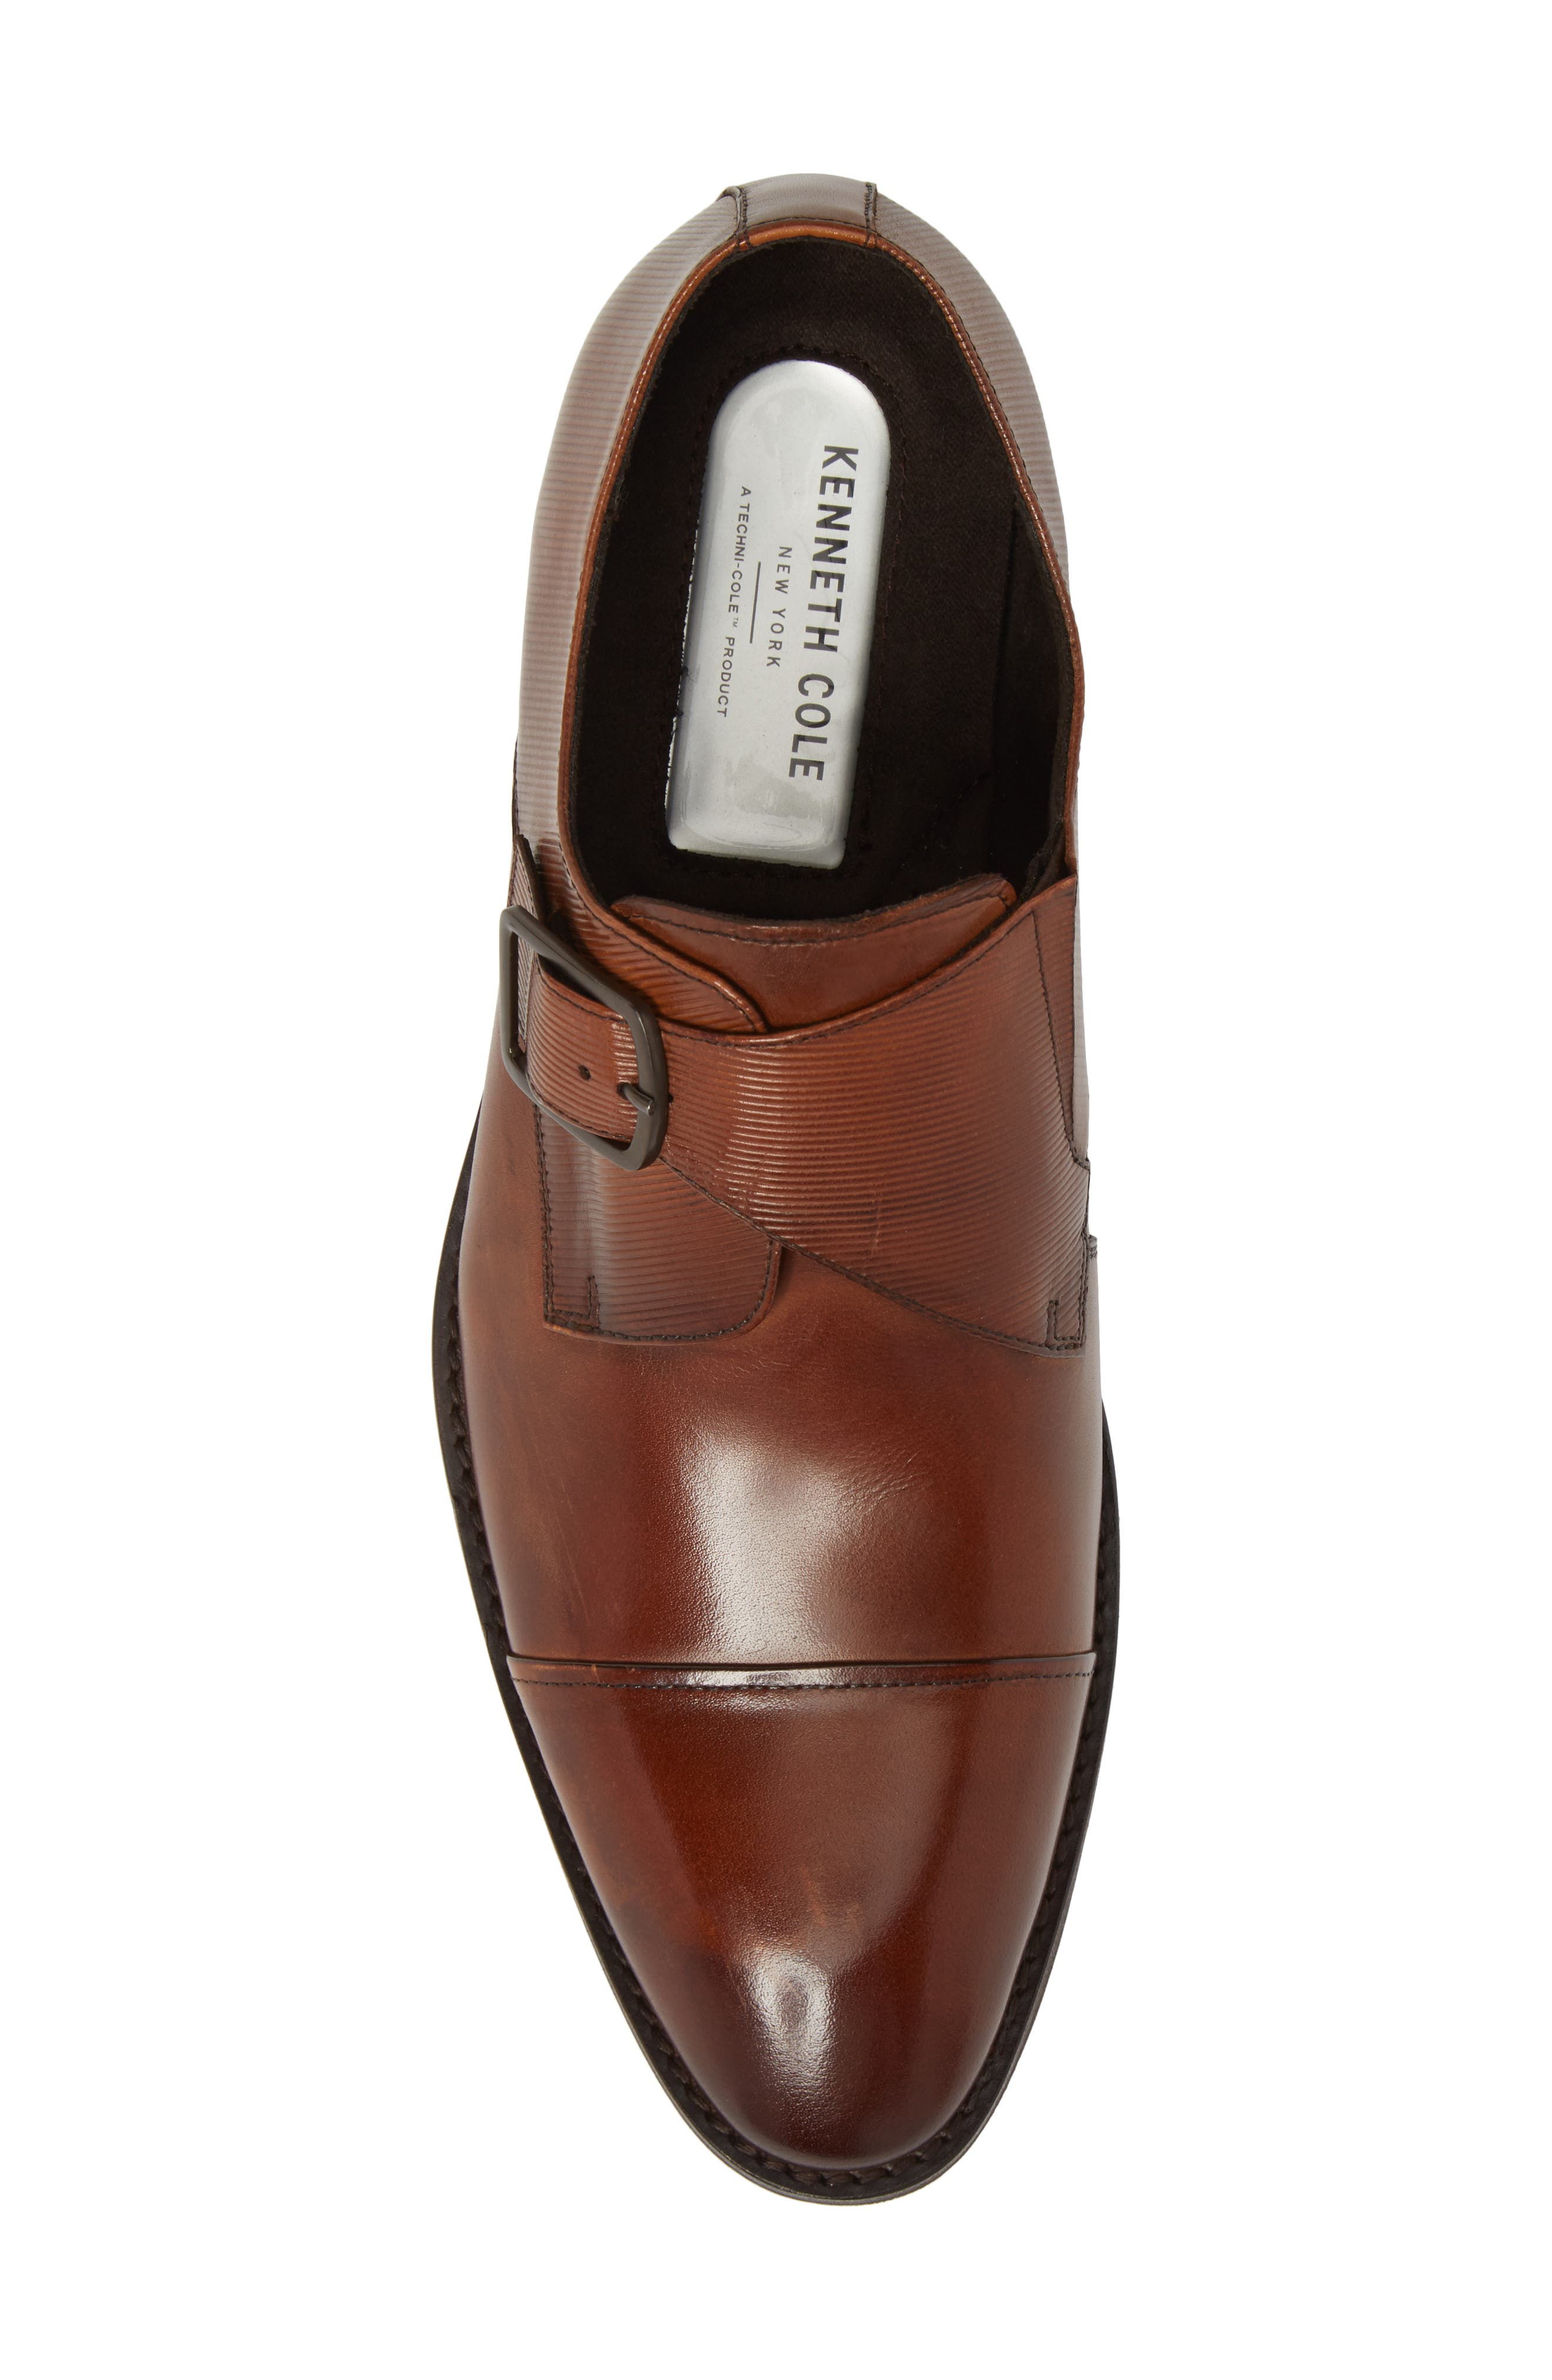 KENNETH COLE NEW YORK,                             Courage Monk Strap Shoe,                             Alternate thumbnail 5, color,                             200